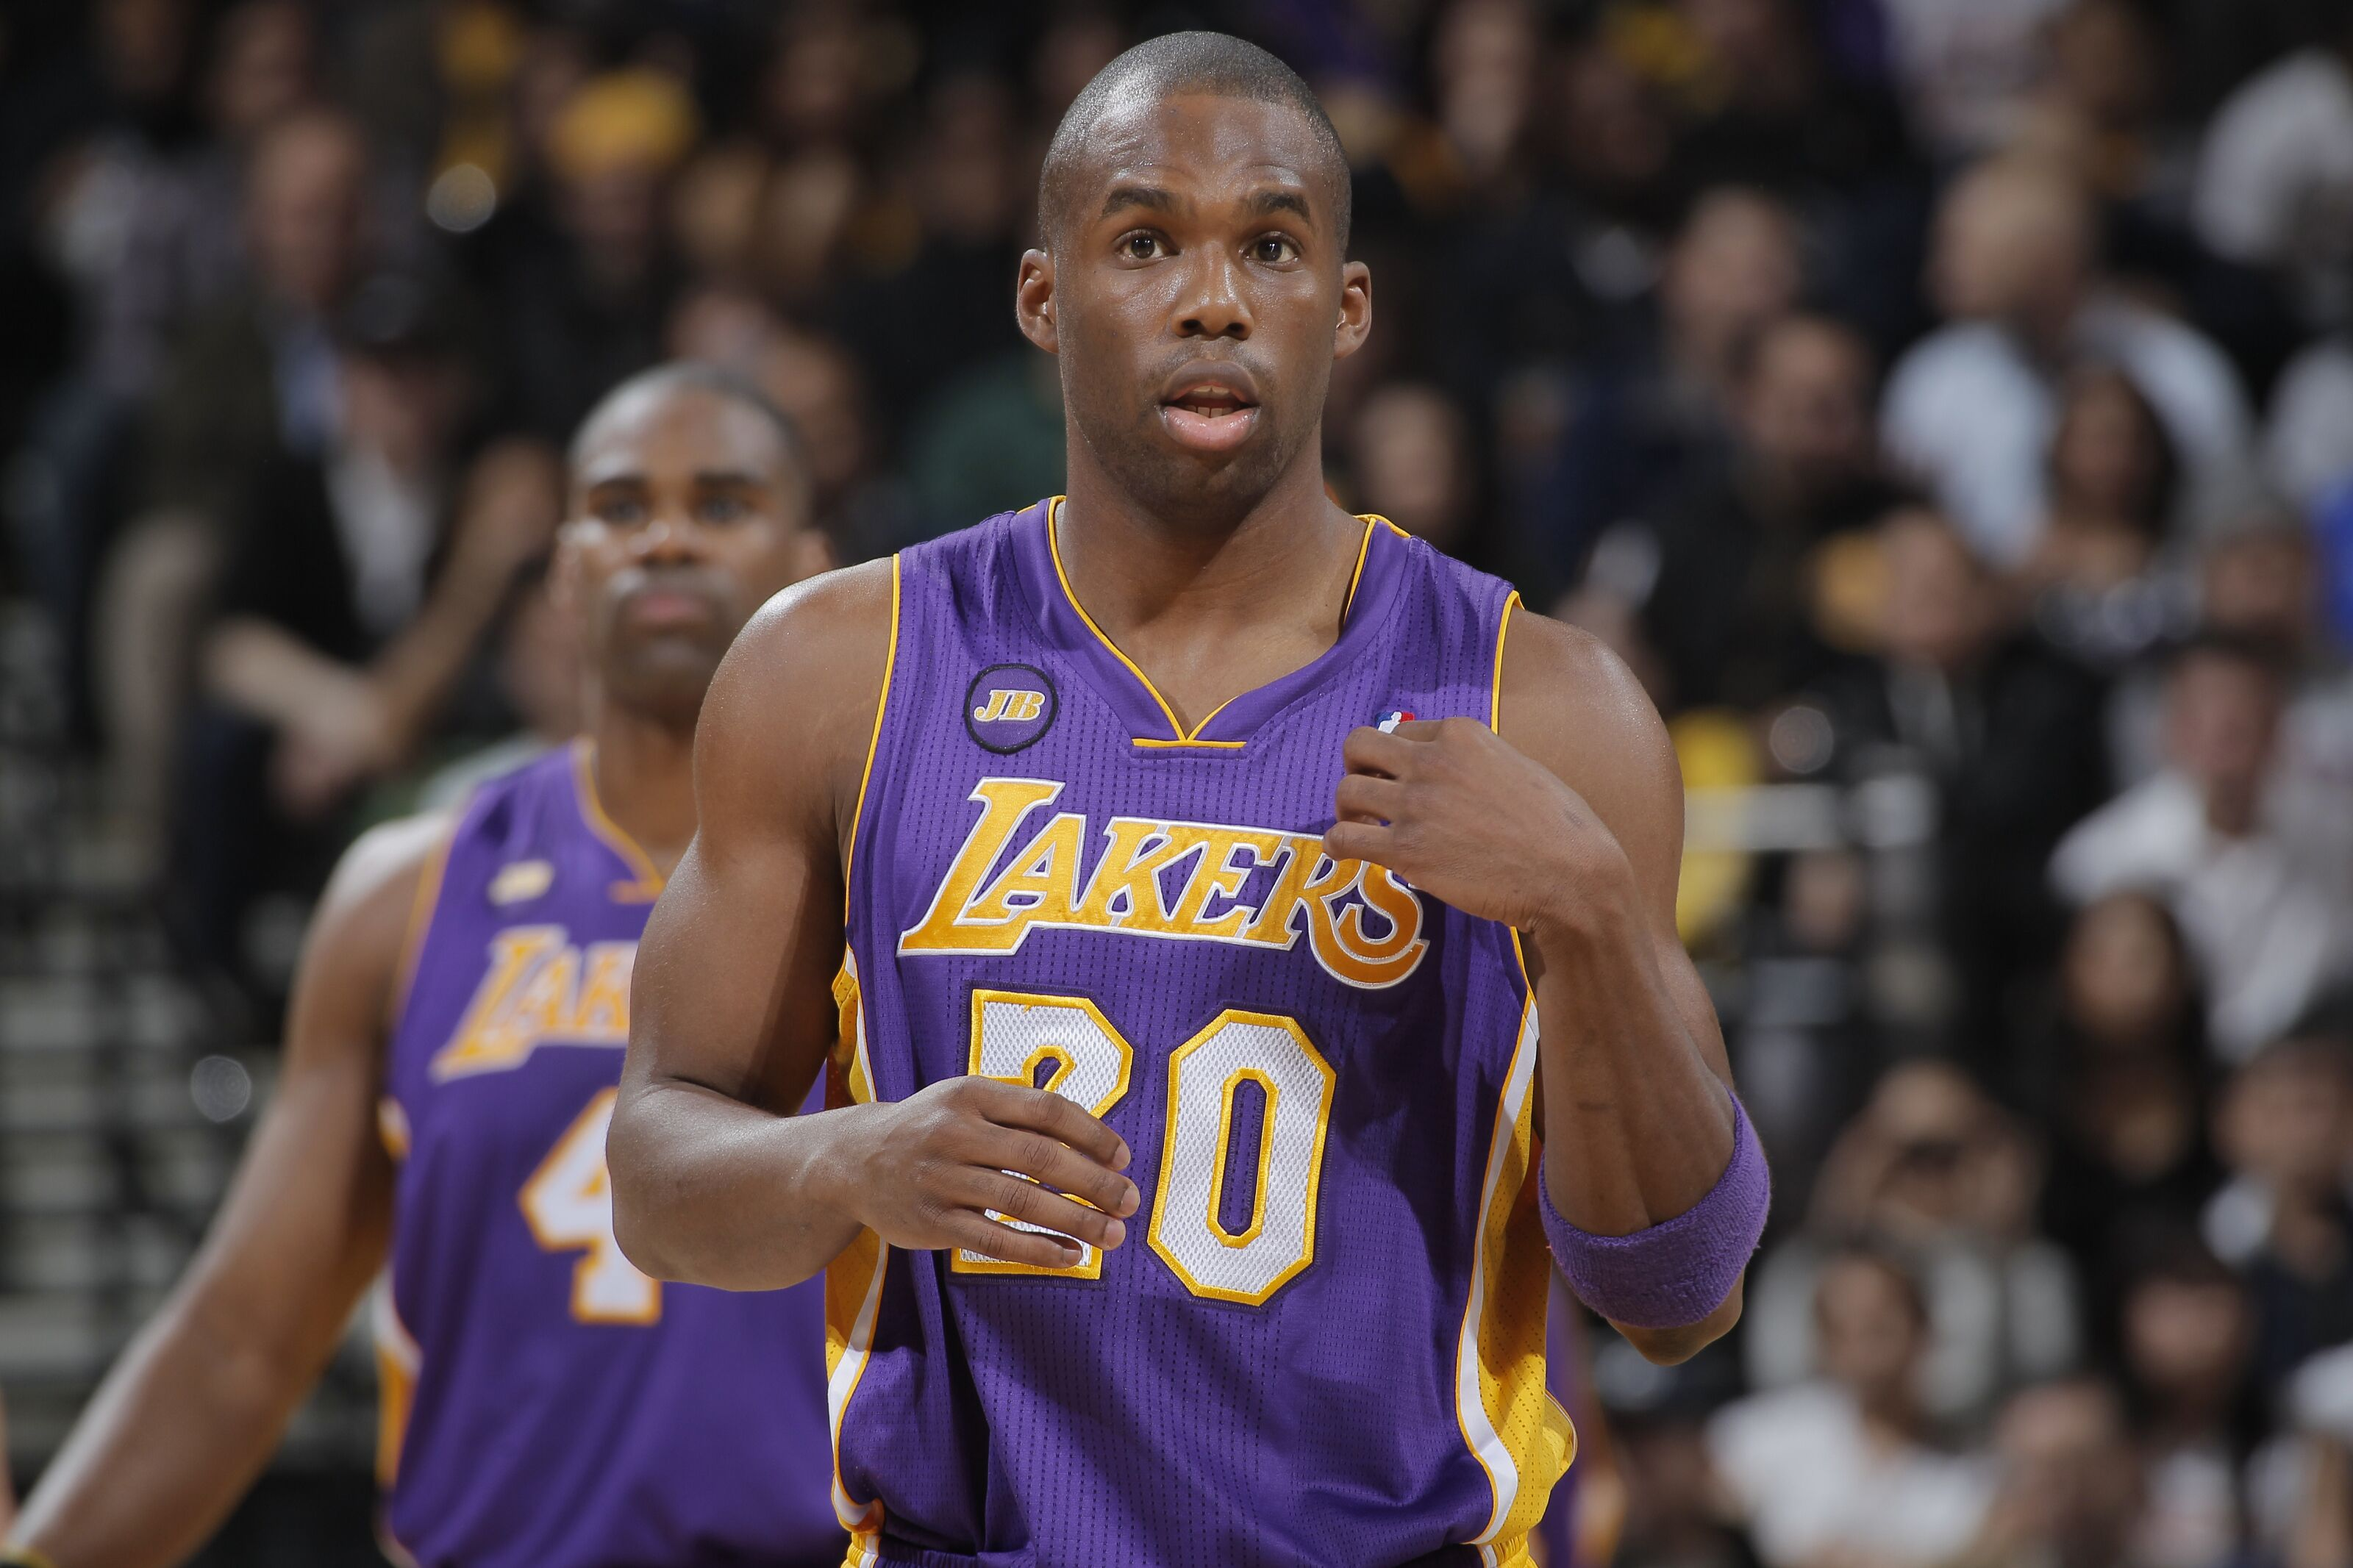 Charlotte Hornets: Mitch Kupchak has always coveted Jodie Meeks